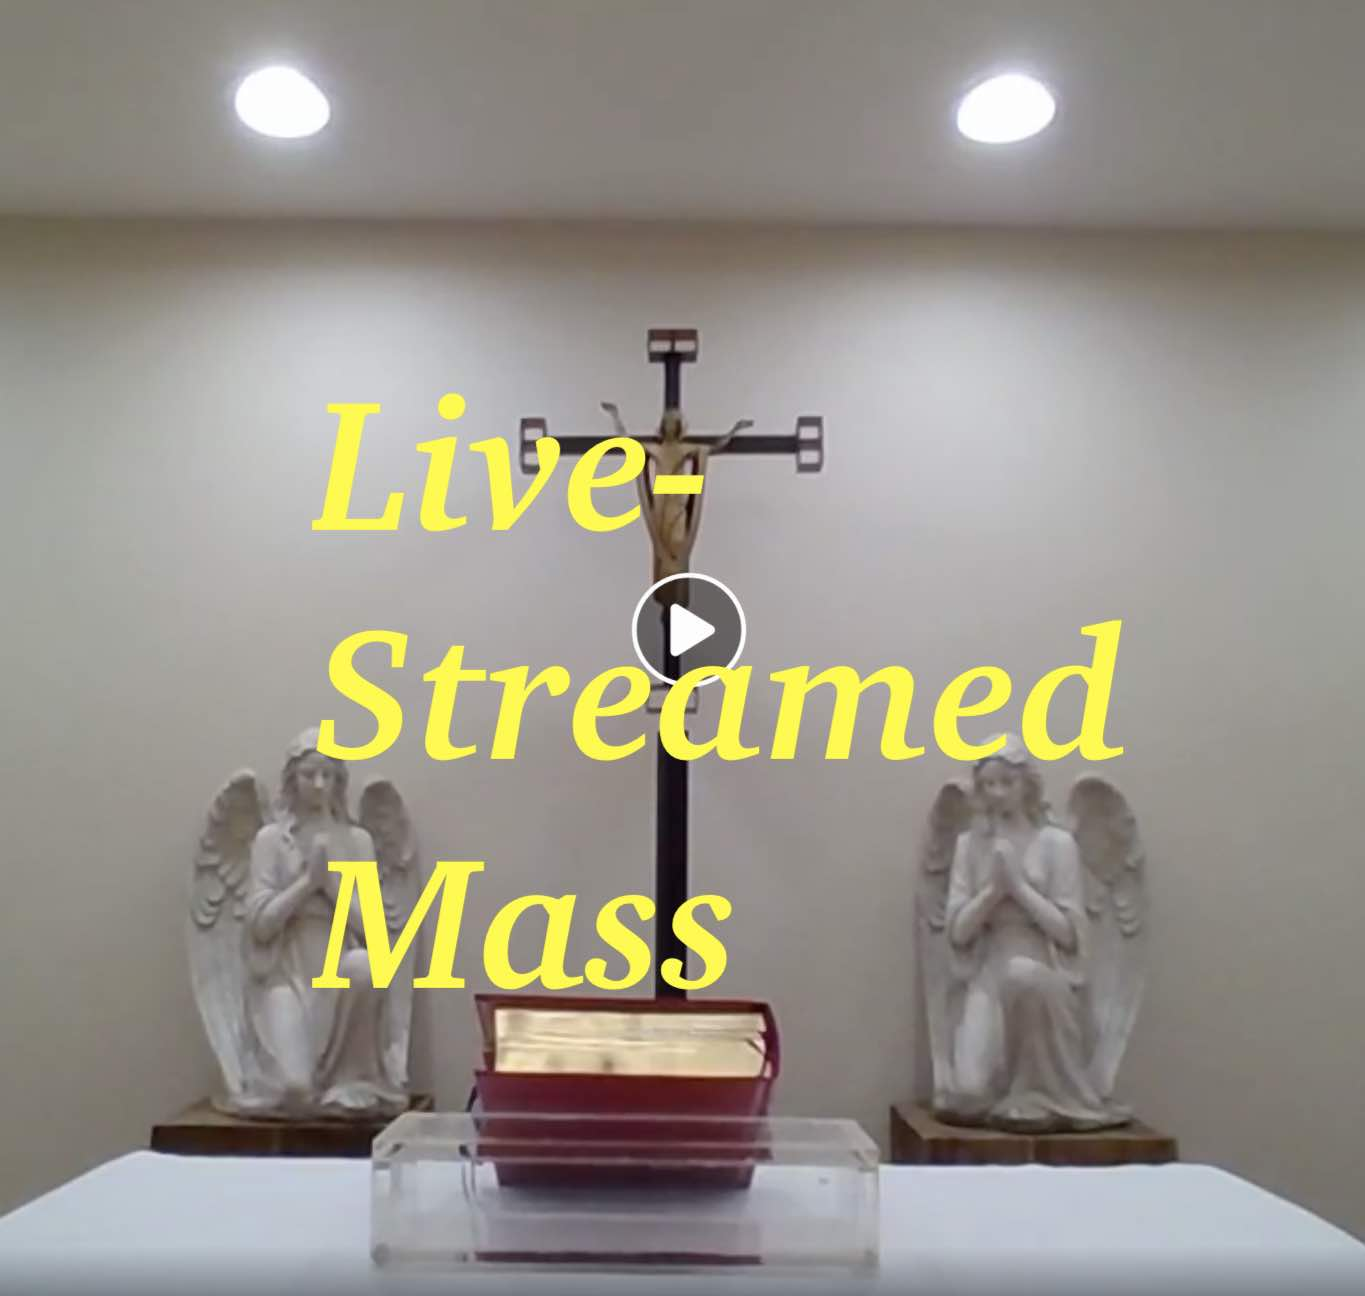 Live-streamed Mass